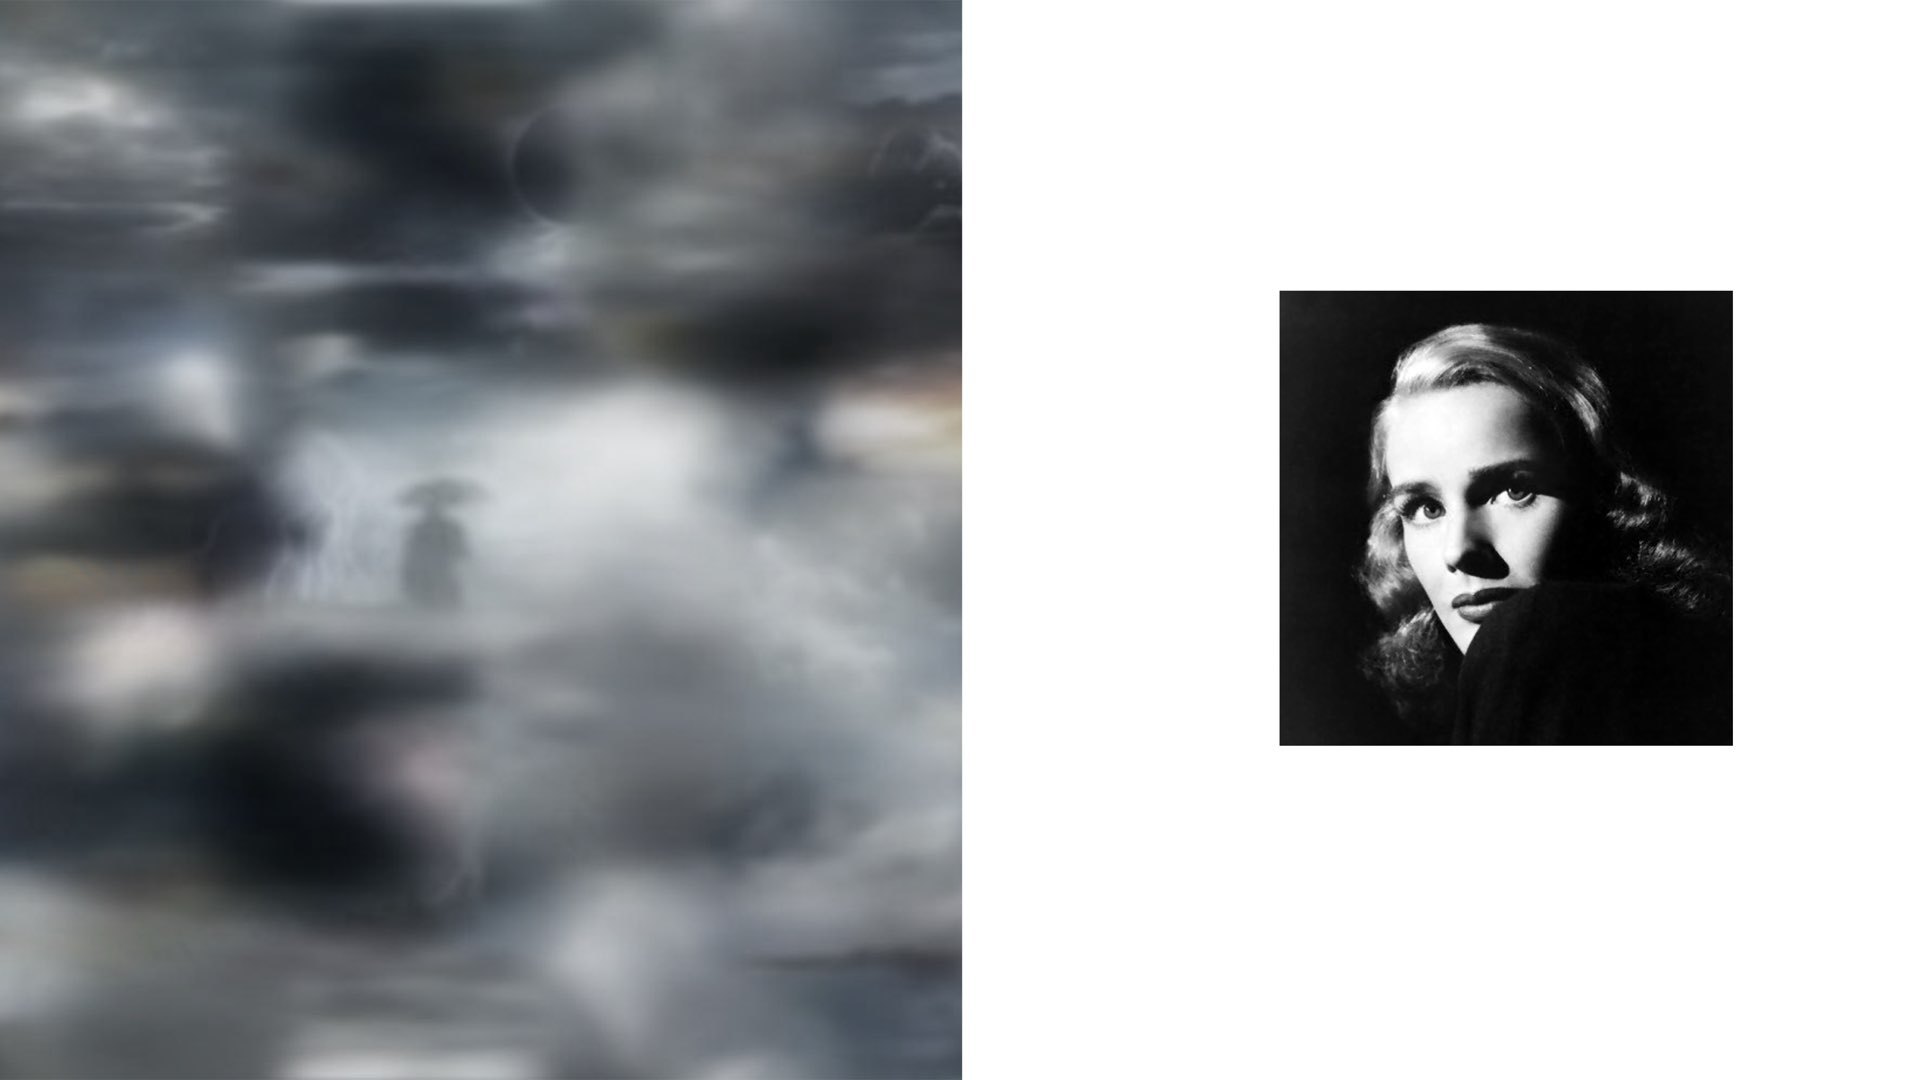 Artist Maja Petrić used machine learning algorithms to create this cloudy sky graphic, shown alongside a black/white glamour portrait of woman